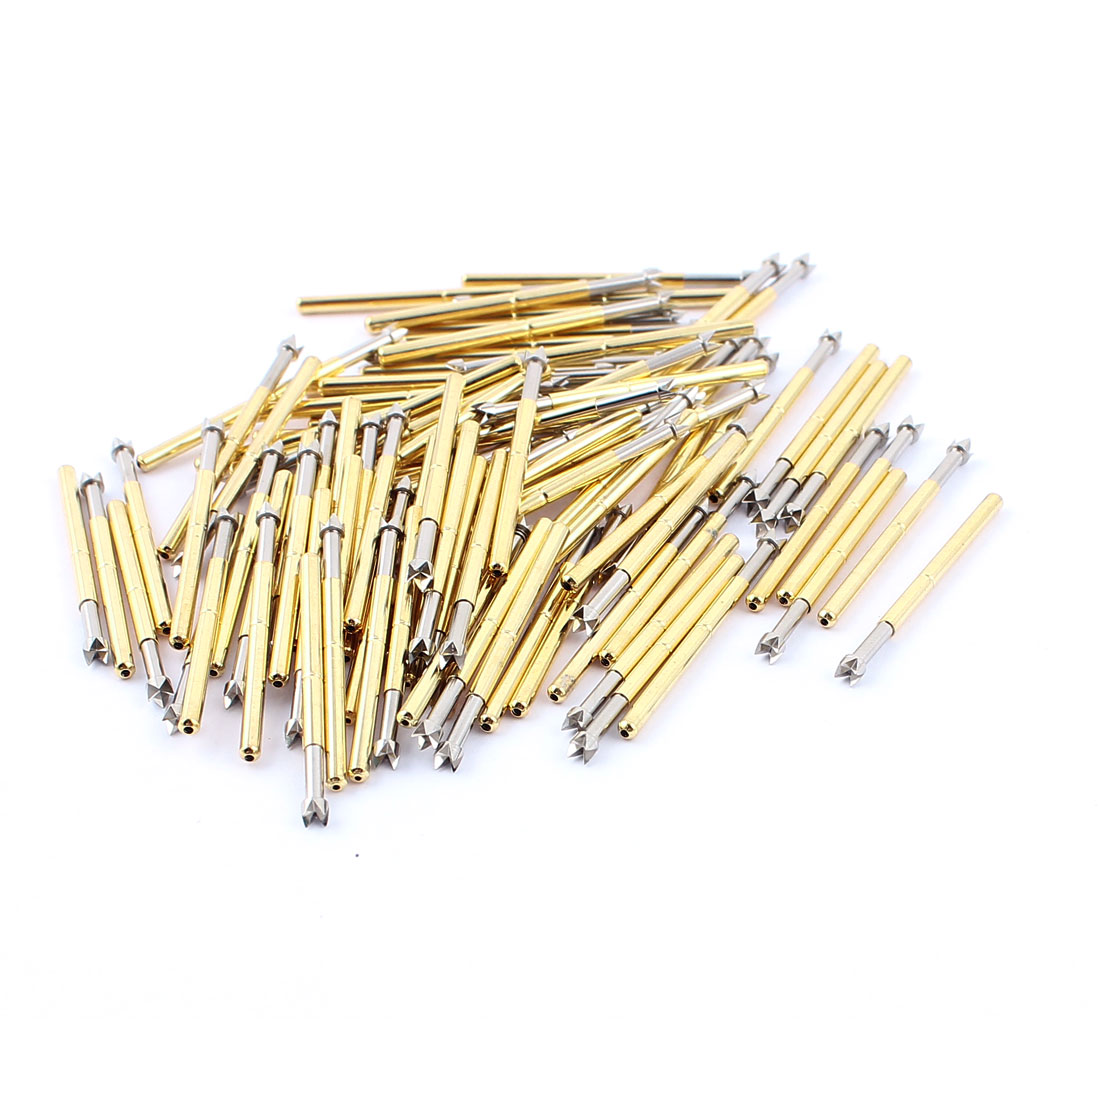 P125-Q2 2.5mm Dia Crown Tip 33mm Length Metal Spring Test Probe Pin 100pcs